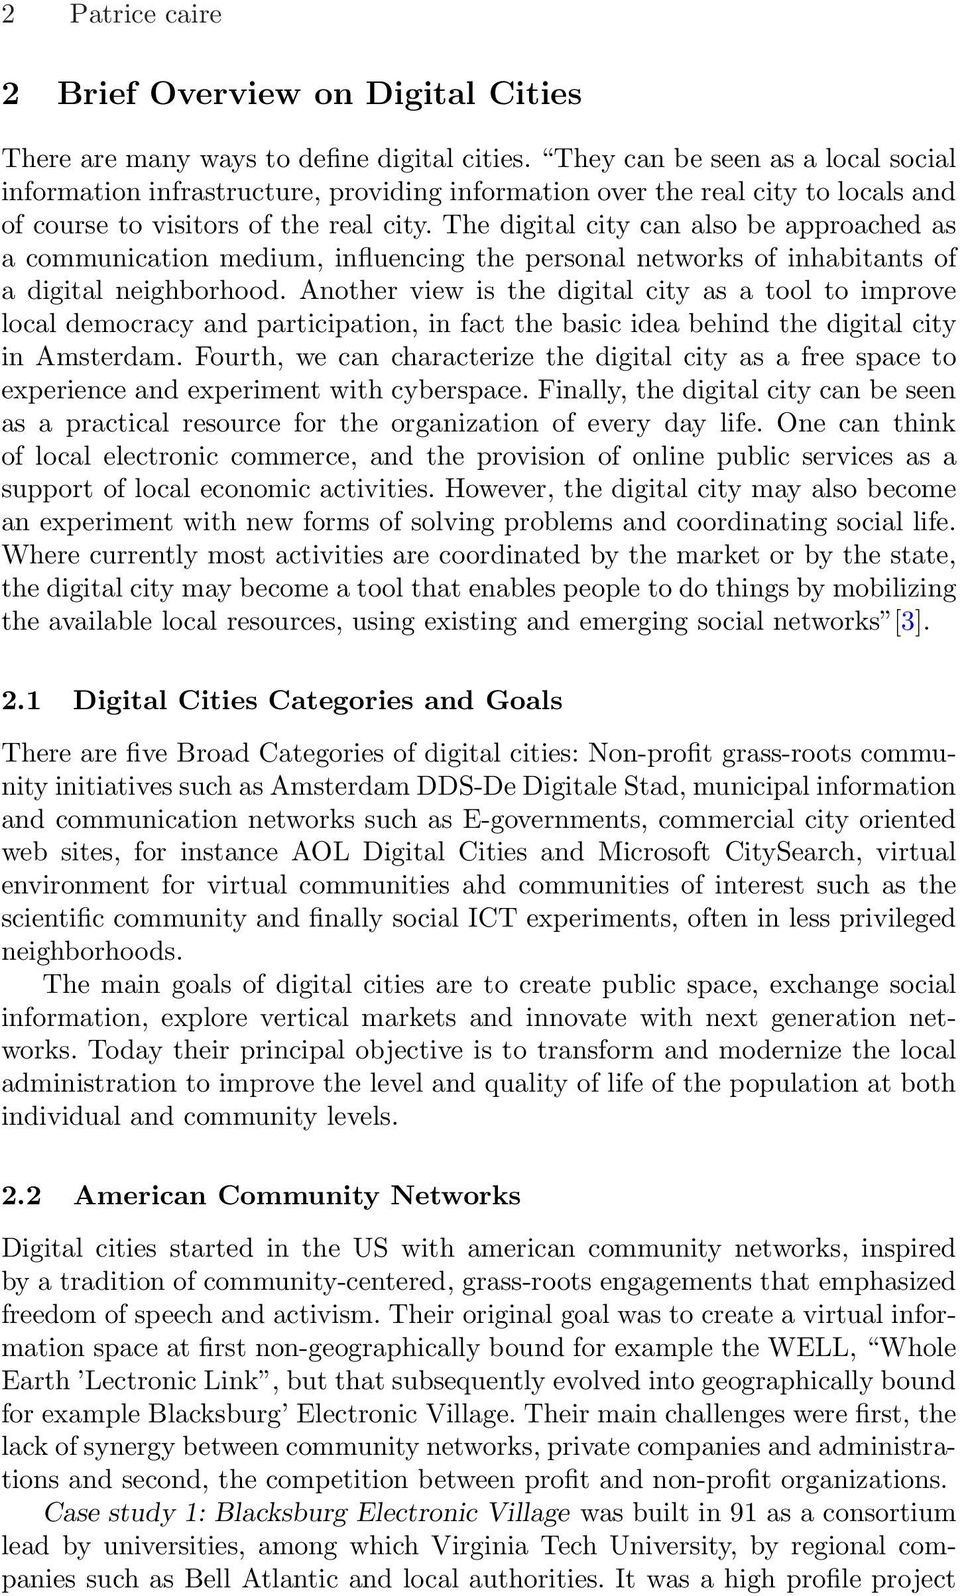 The digital city can also be approached as a communication medium, influencing the personal networks of inhabitants of a digital neighborhood.